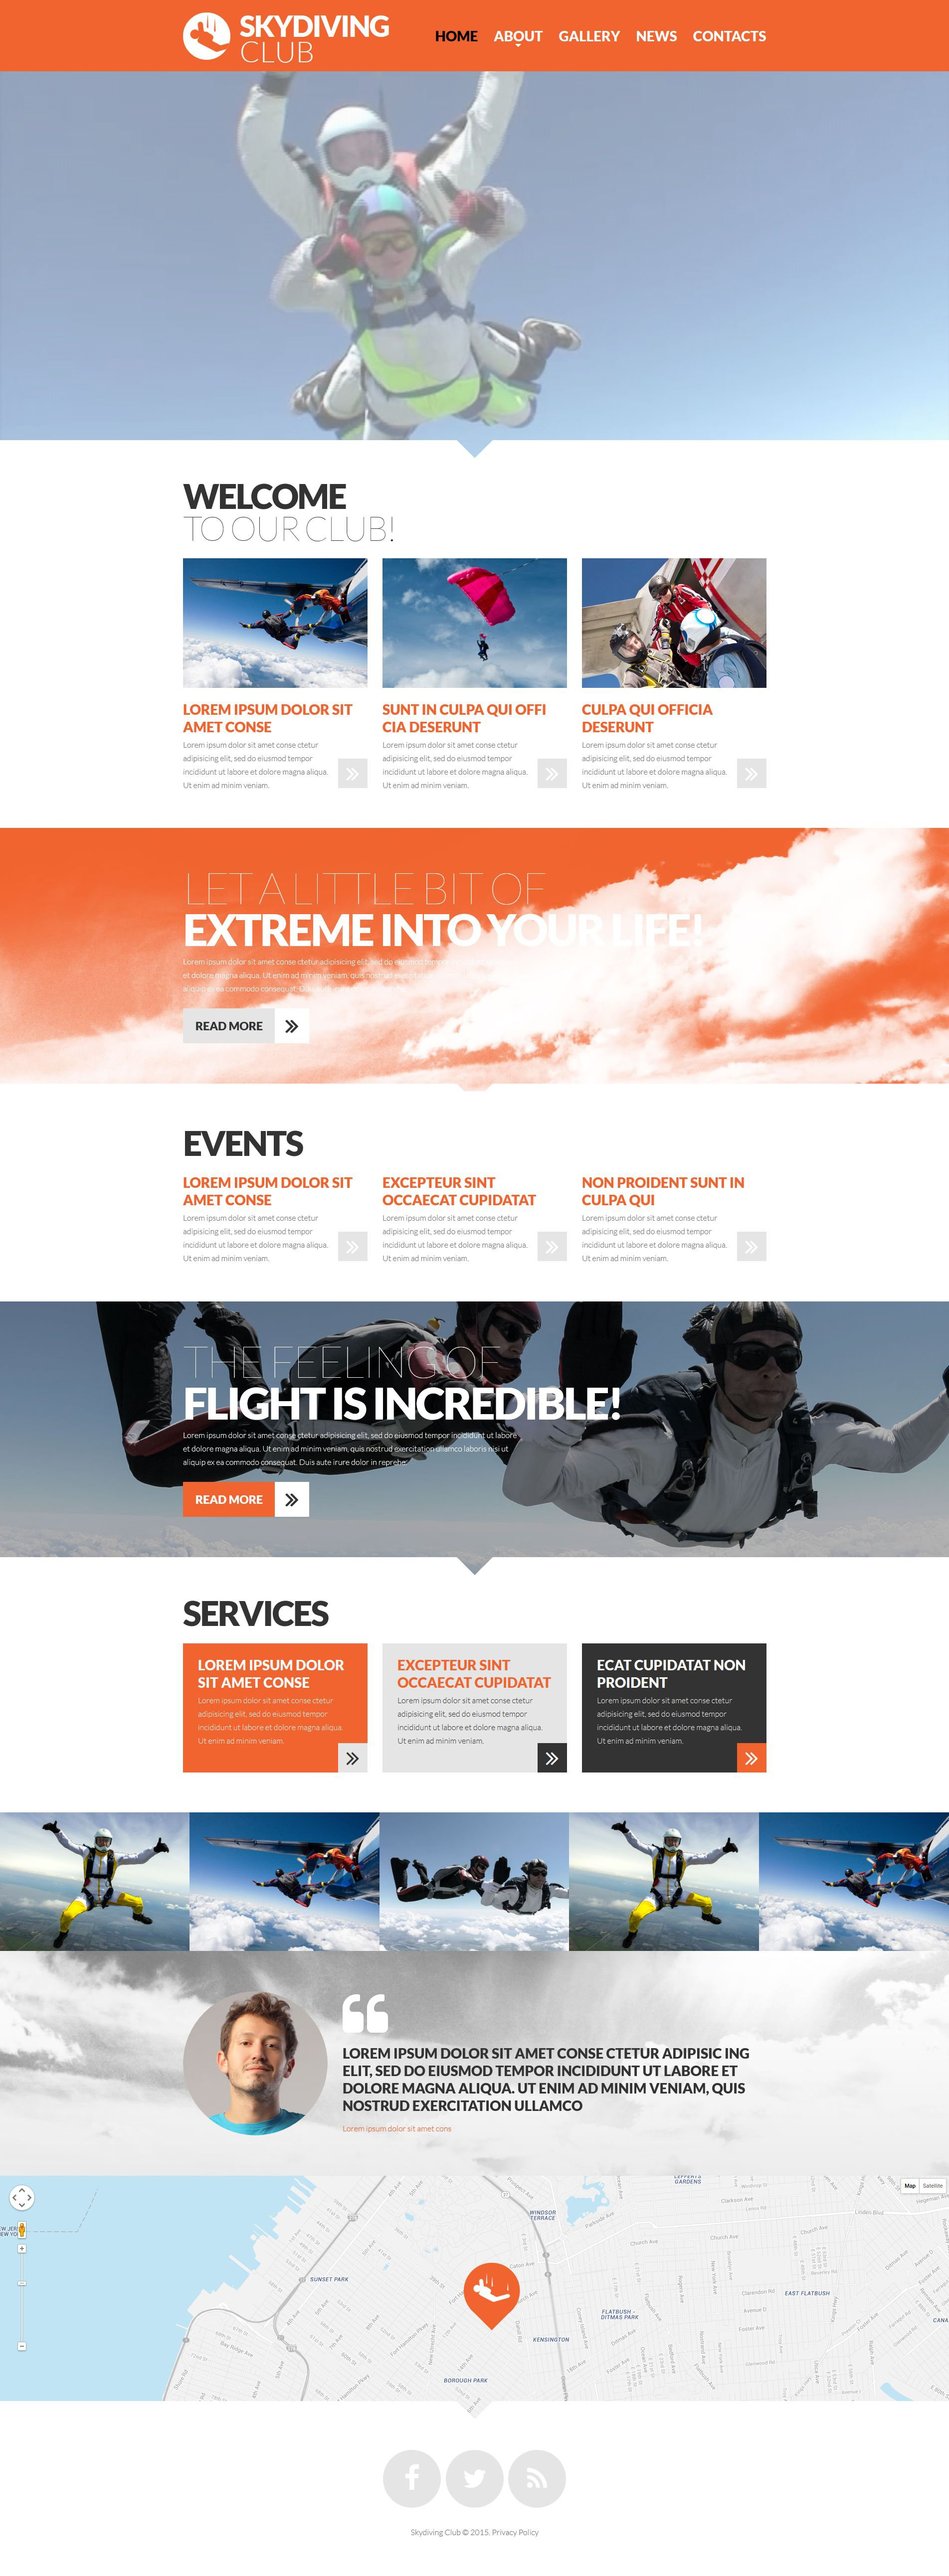 The Ski Diving Responsive Javascript Animated Design 53469, one of the best website templates of its kind (sport, most popular), also known as ski diving website template, resort website template, winter sports website template, extreme website template, Alpine skiing website template, resort website template, mountains website template, team website template, tour resort website template, active website template, skis website template, gear website template, snowboarding website template, showboard website template, mountain website template, hill website template, helmets website template, gloves website template, shoes website template, protection website template, clothes company website template, quality website template, products website template, accessories website template, high professional website template, skill website template, support website template, training website template, sh and related with ski diving, resort, winter sports, extreme, Alpine skiing, resort, mountains, team, tour resort, active, skis, gear, snowboarding, showboard, mountain, hill, helmets, gloves, shoes, protection, clothes company, quality, products, accessories, high professional, skill, support, training, sh, etc.